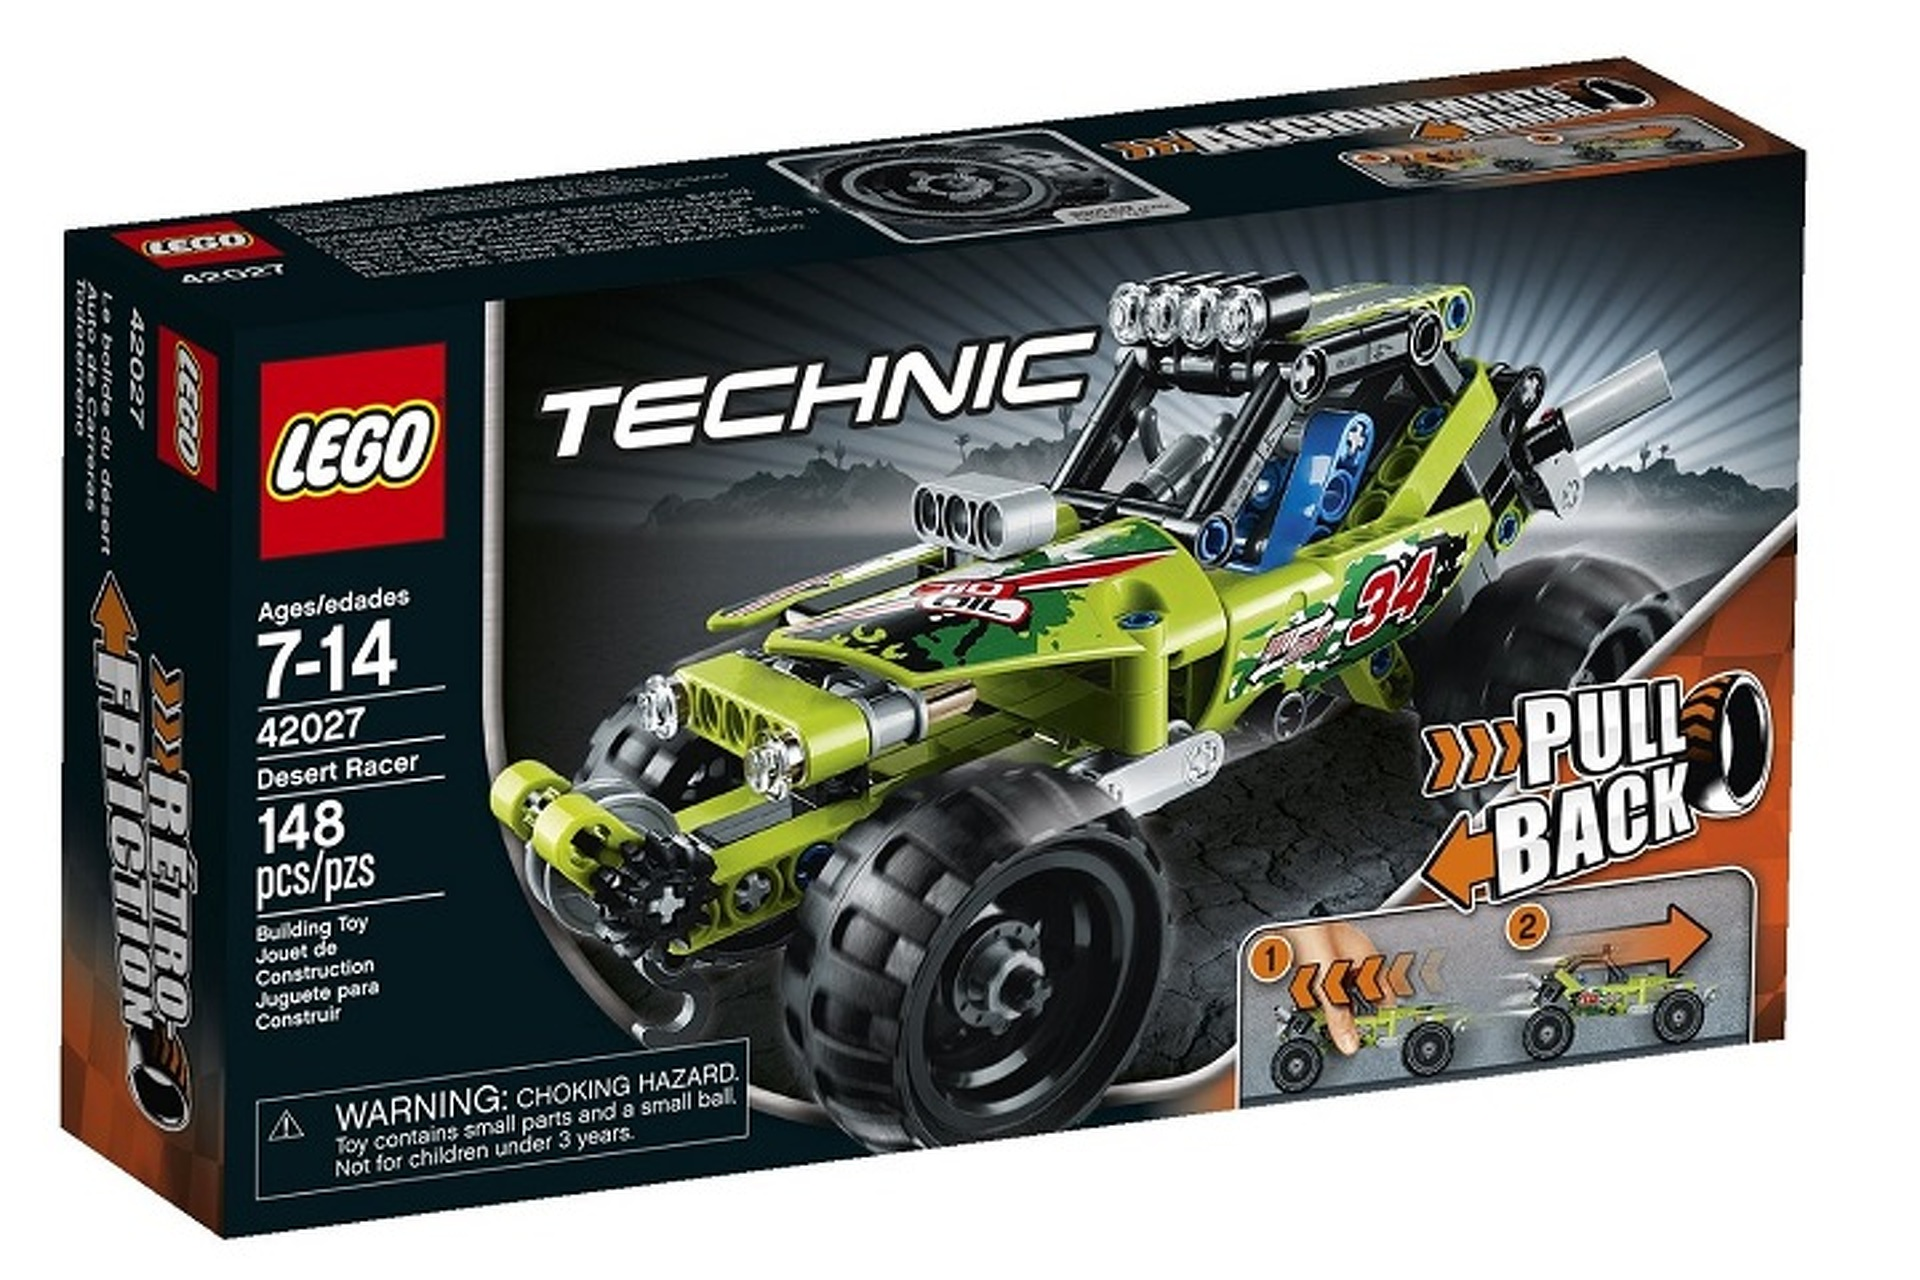 5 Great Auto Gifts for Kids This Holiday Season